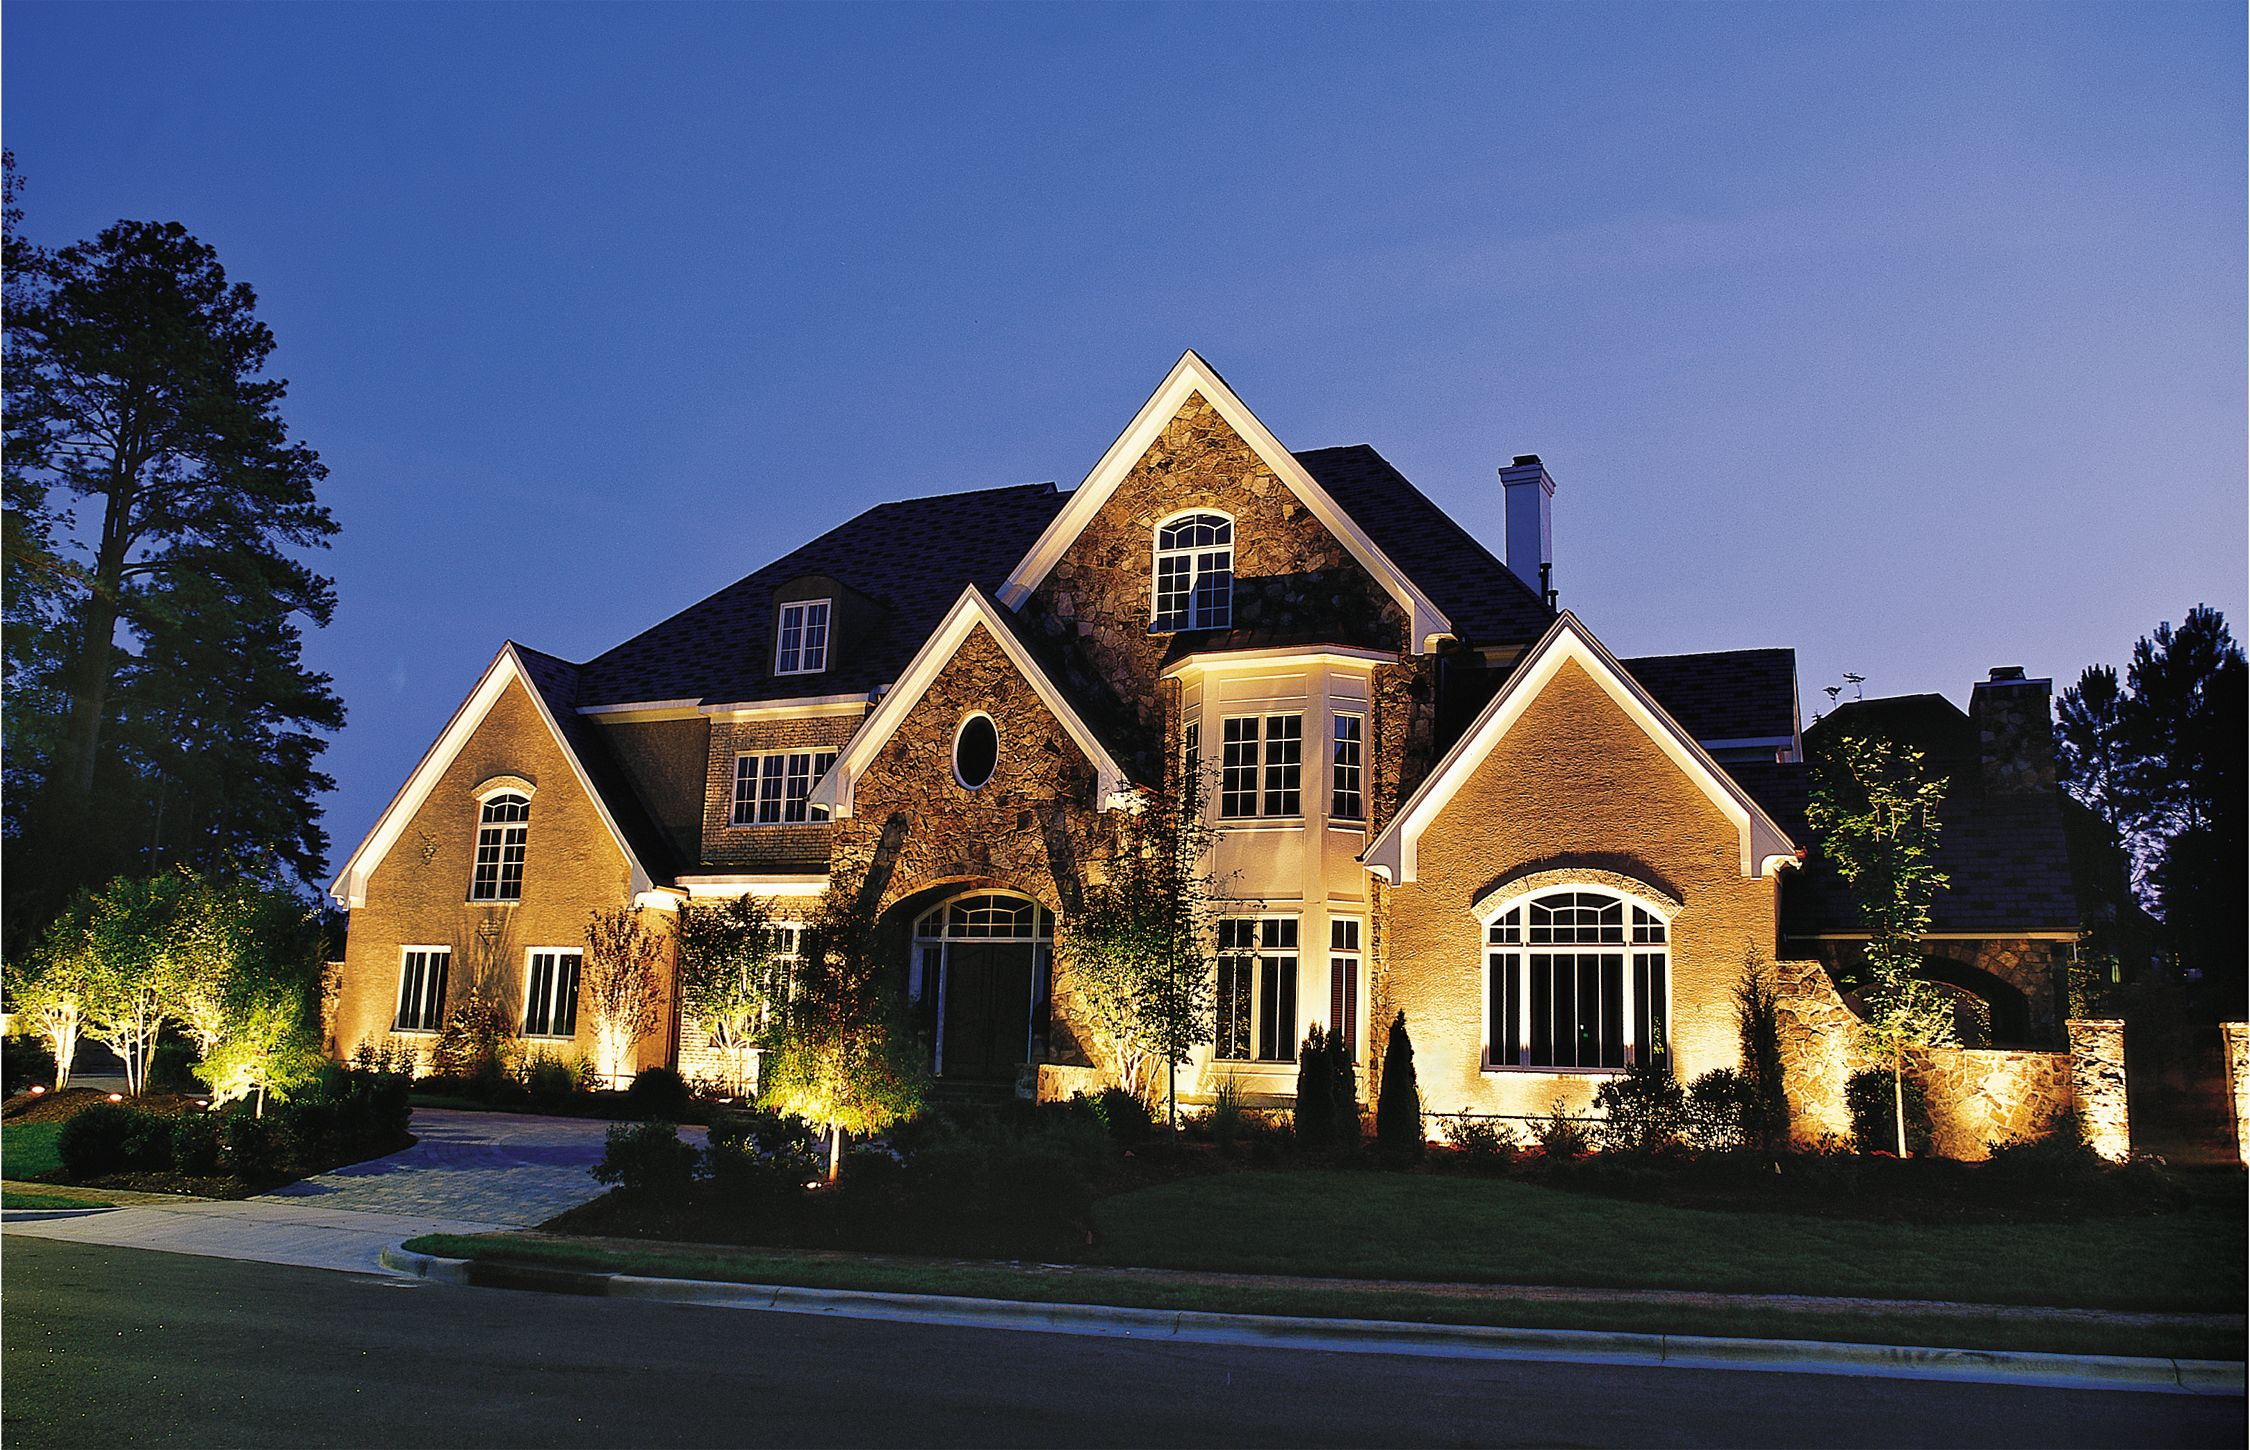 Just Launched Our Amazing Diy Low Voltage Landscape Lighting Kits Starting At 1 249 00 See Outdoor Lighting Design Landscape Lighting Design Outdoor Lighting